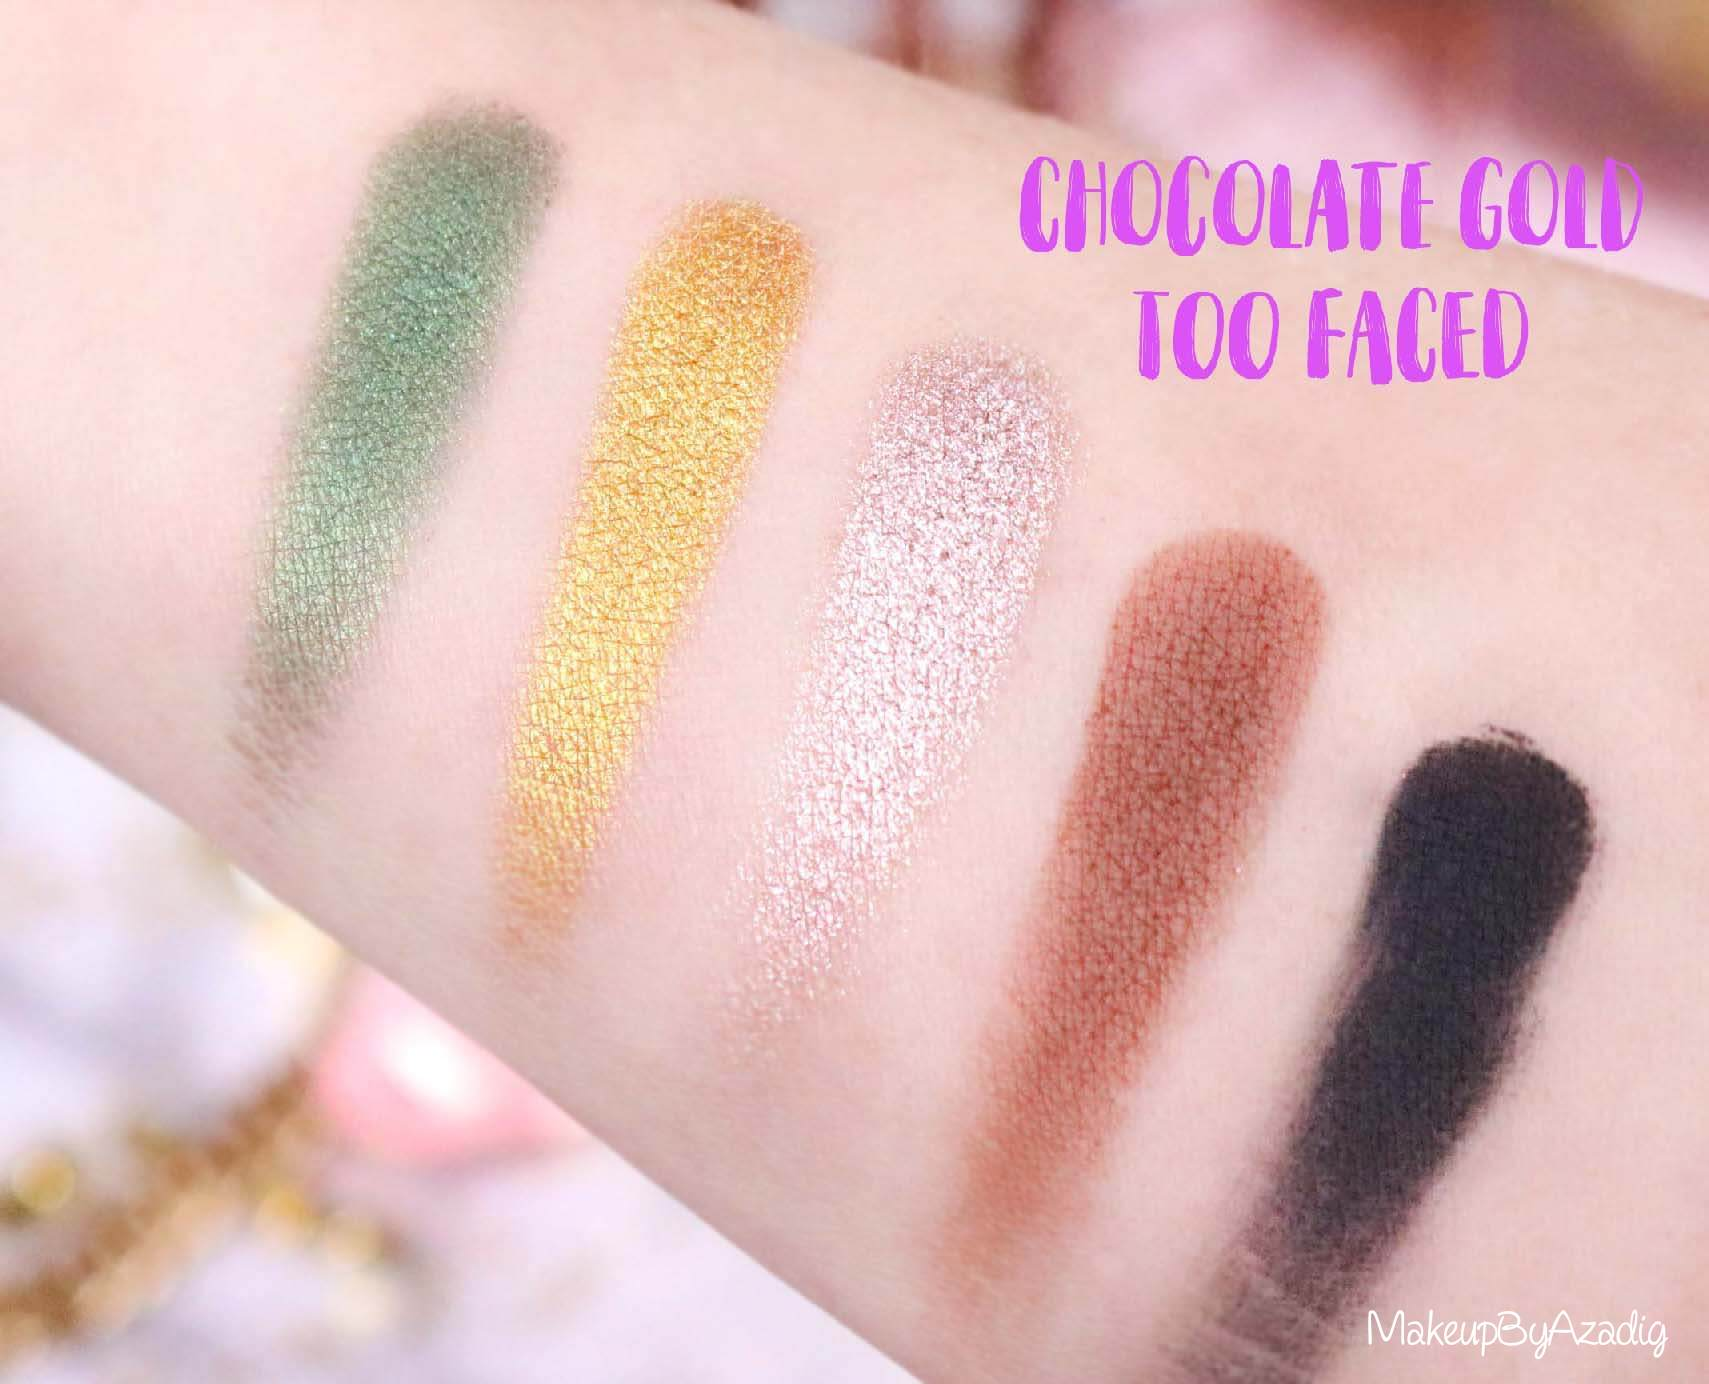 green-revue-palette-too-faced-chocolate-gold-review-swatch-swatches-avis-prix-makeupbyazadig-influencer-miniature-2